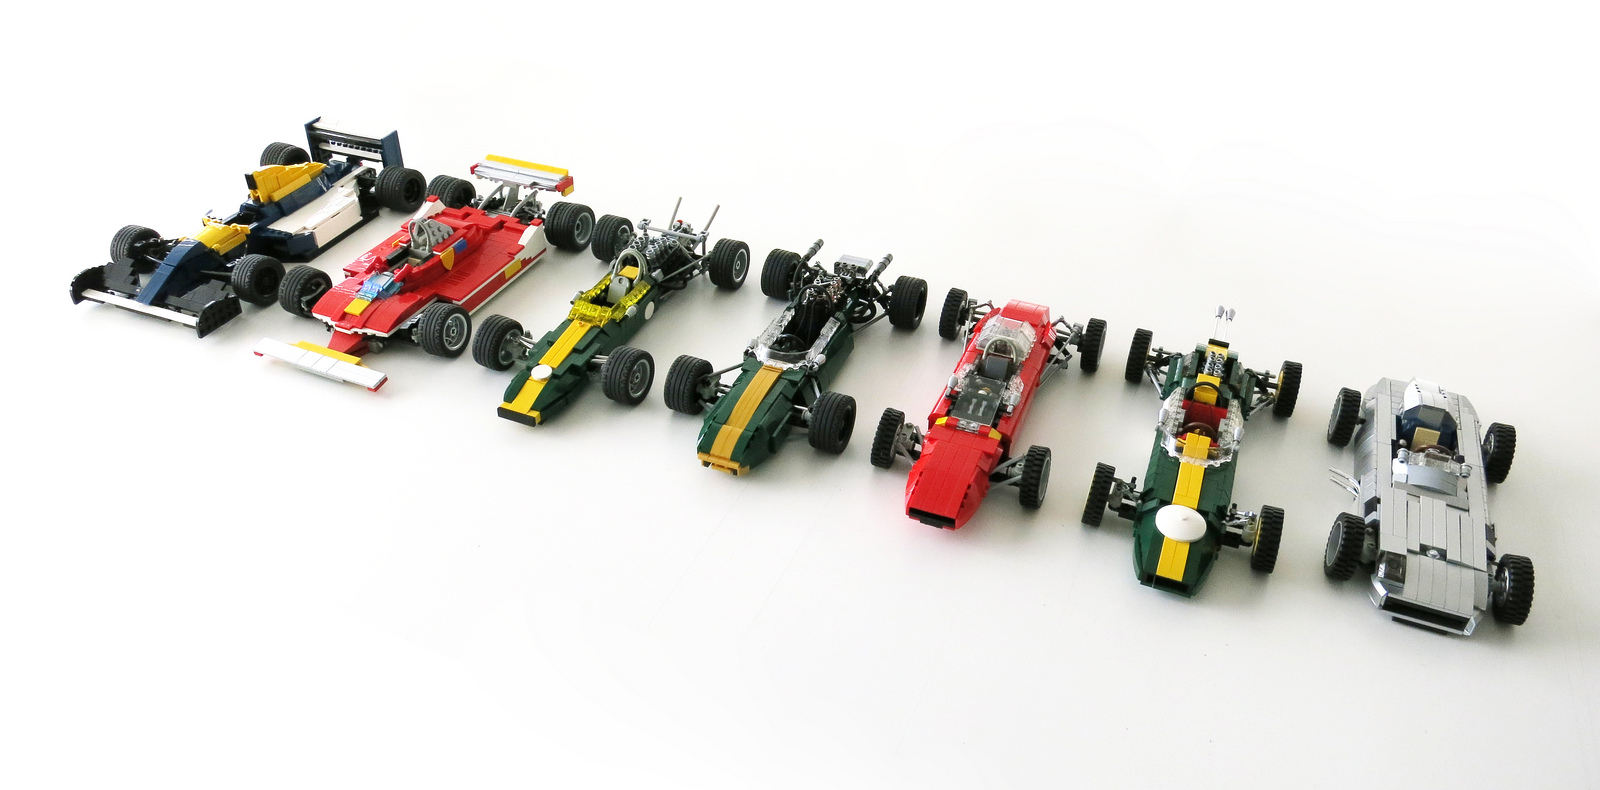 The Chicane Bob Alexander S Amazing Lego Racing Cars